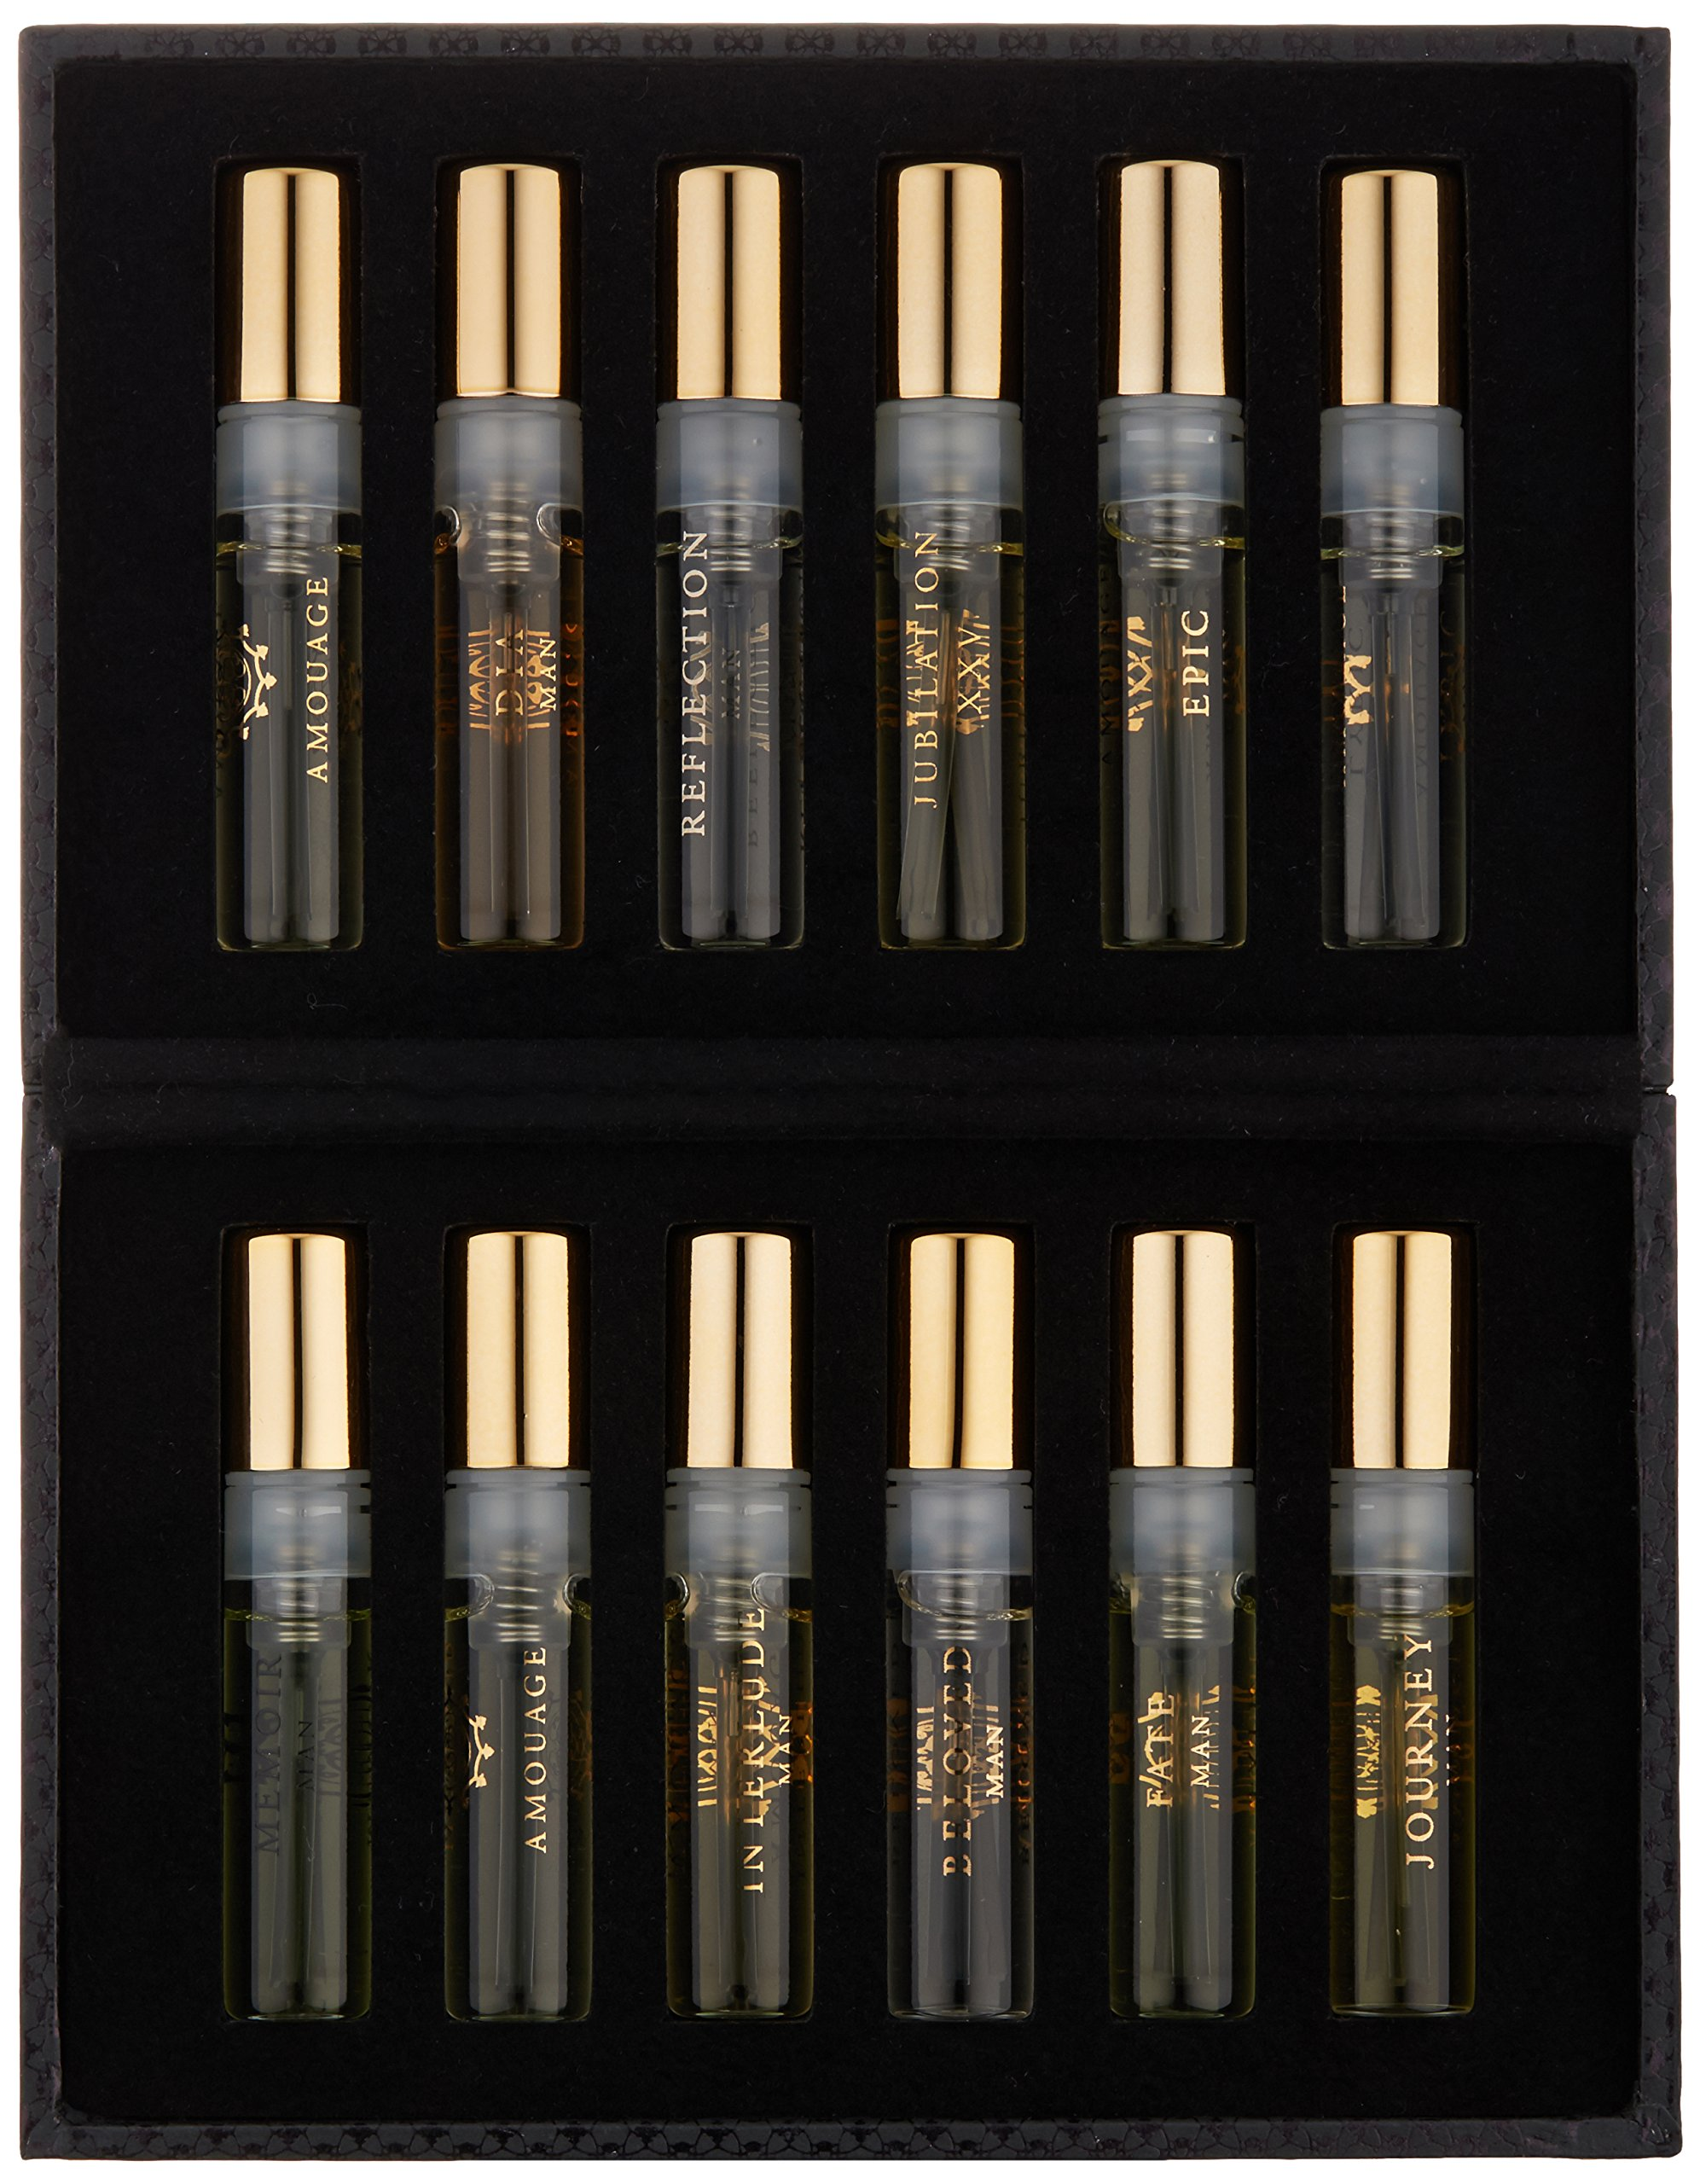 AMOUAGE Sampler Box Men's Fragrance Set by AMOUAGE (Image #4)